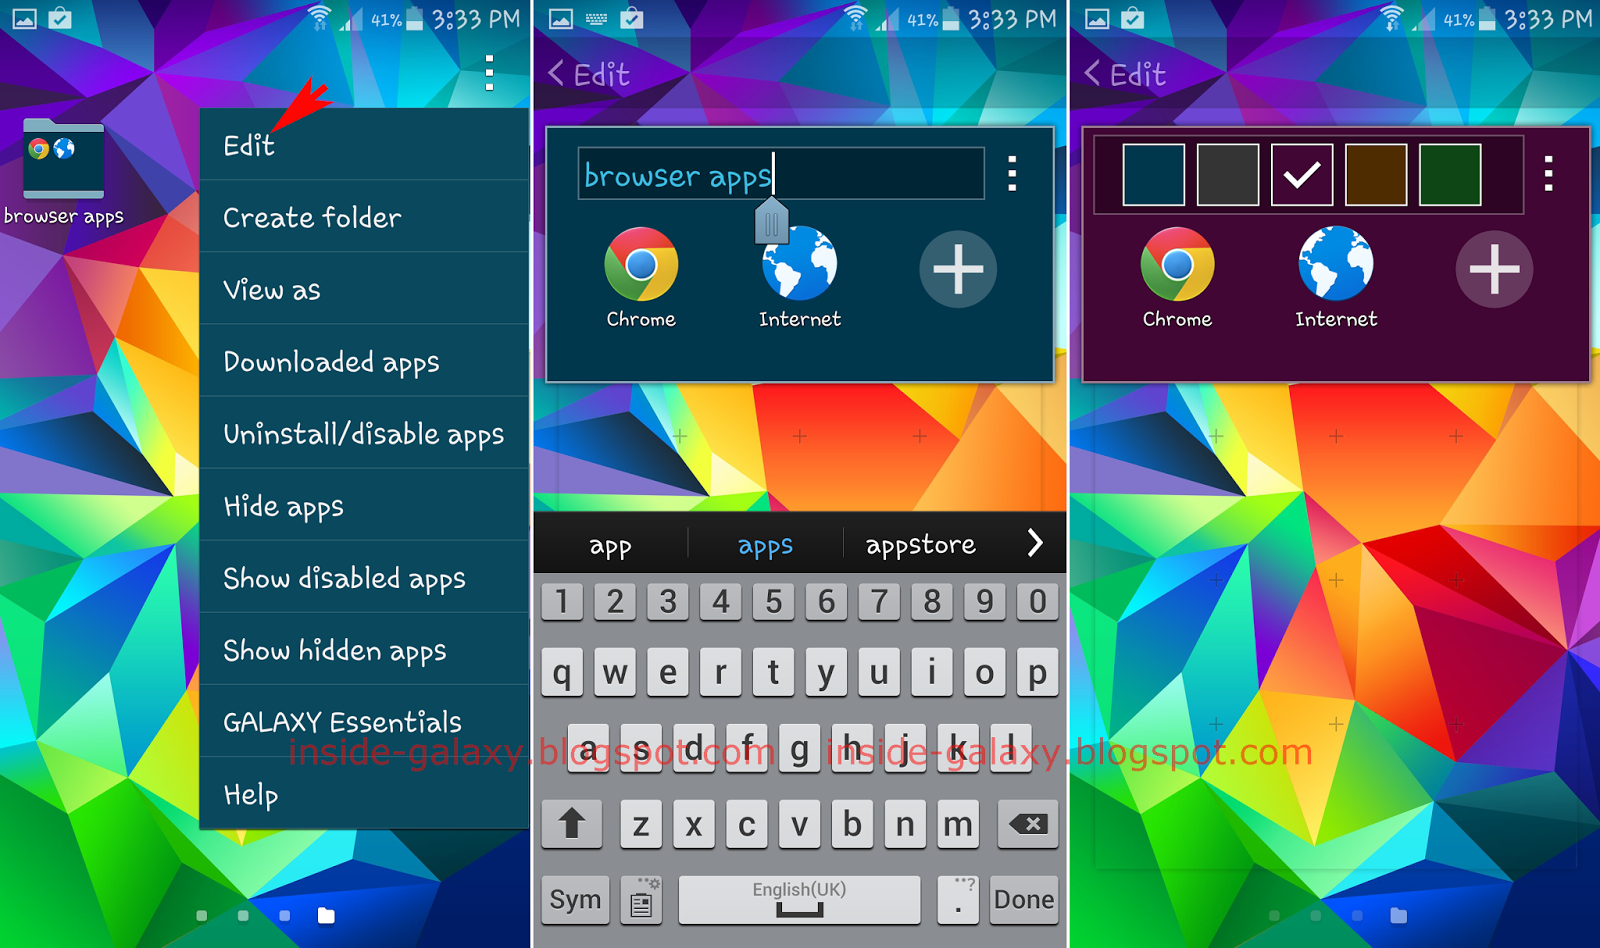 How To Customize Folder In Apps Menu? Once You Create A New Folder, You